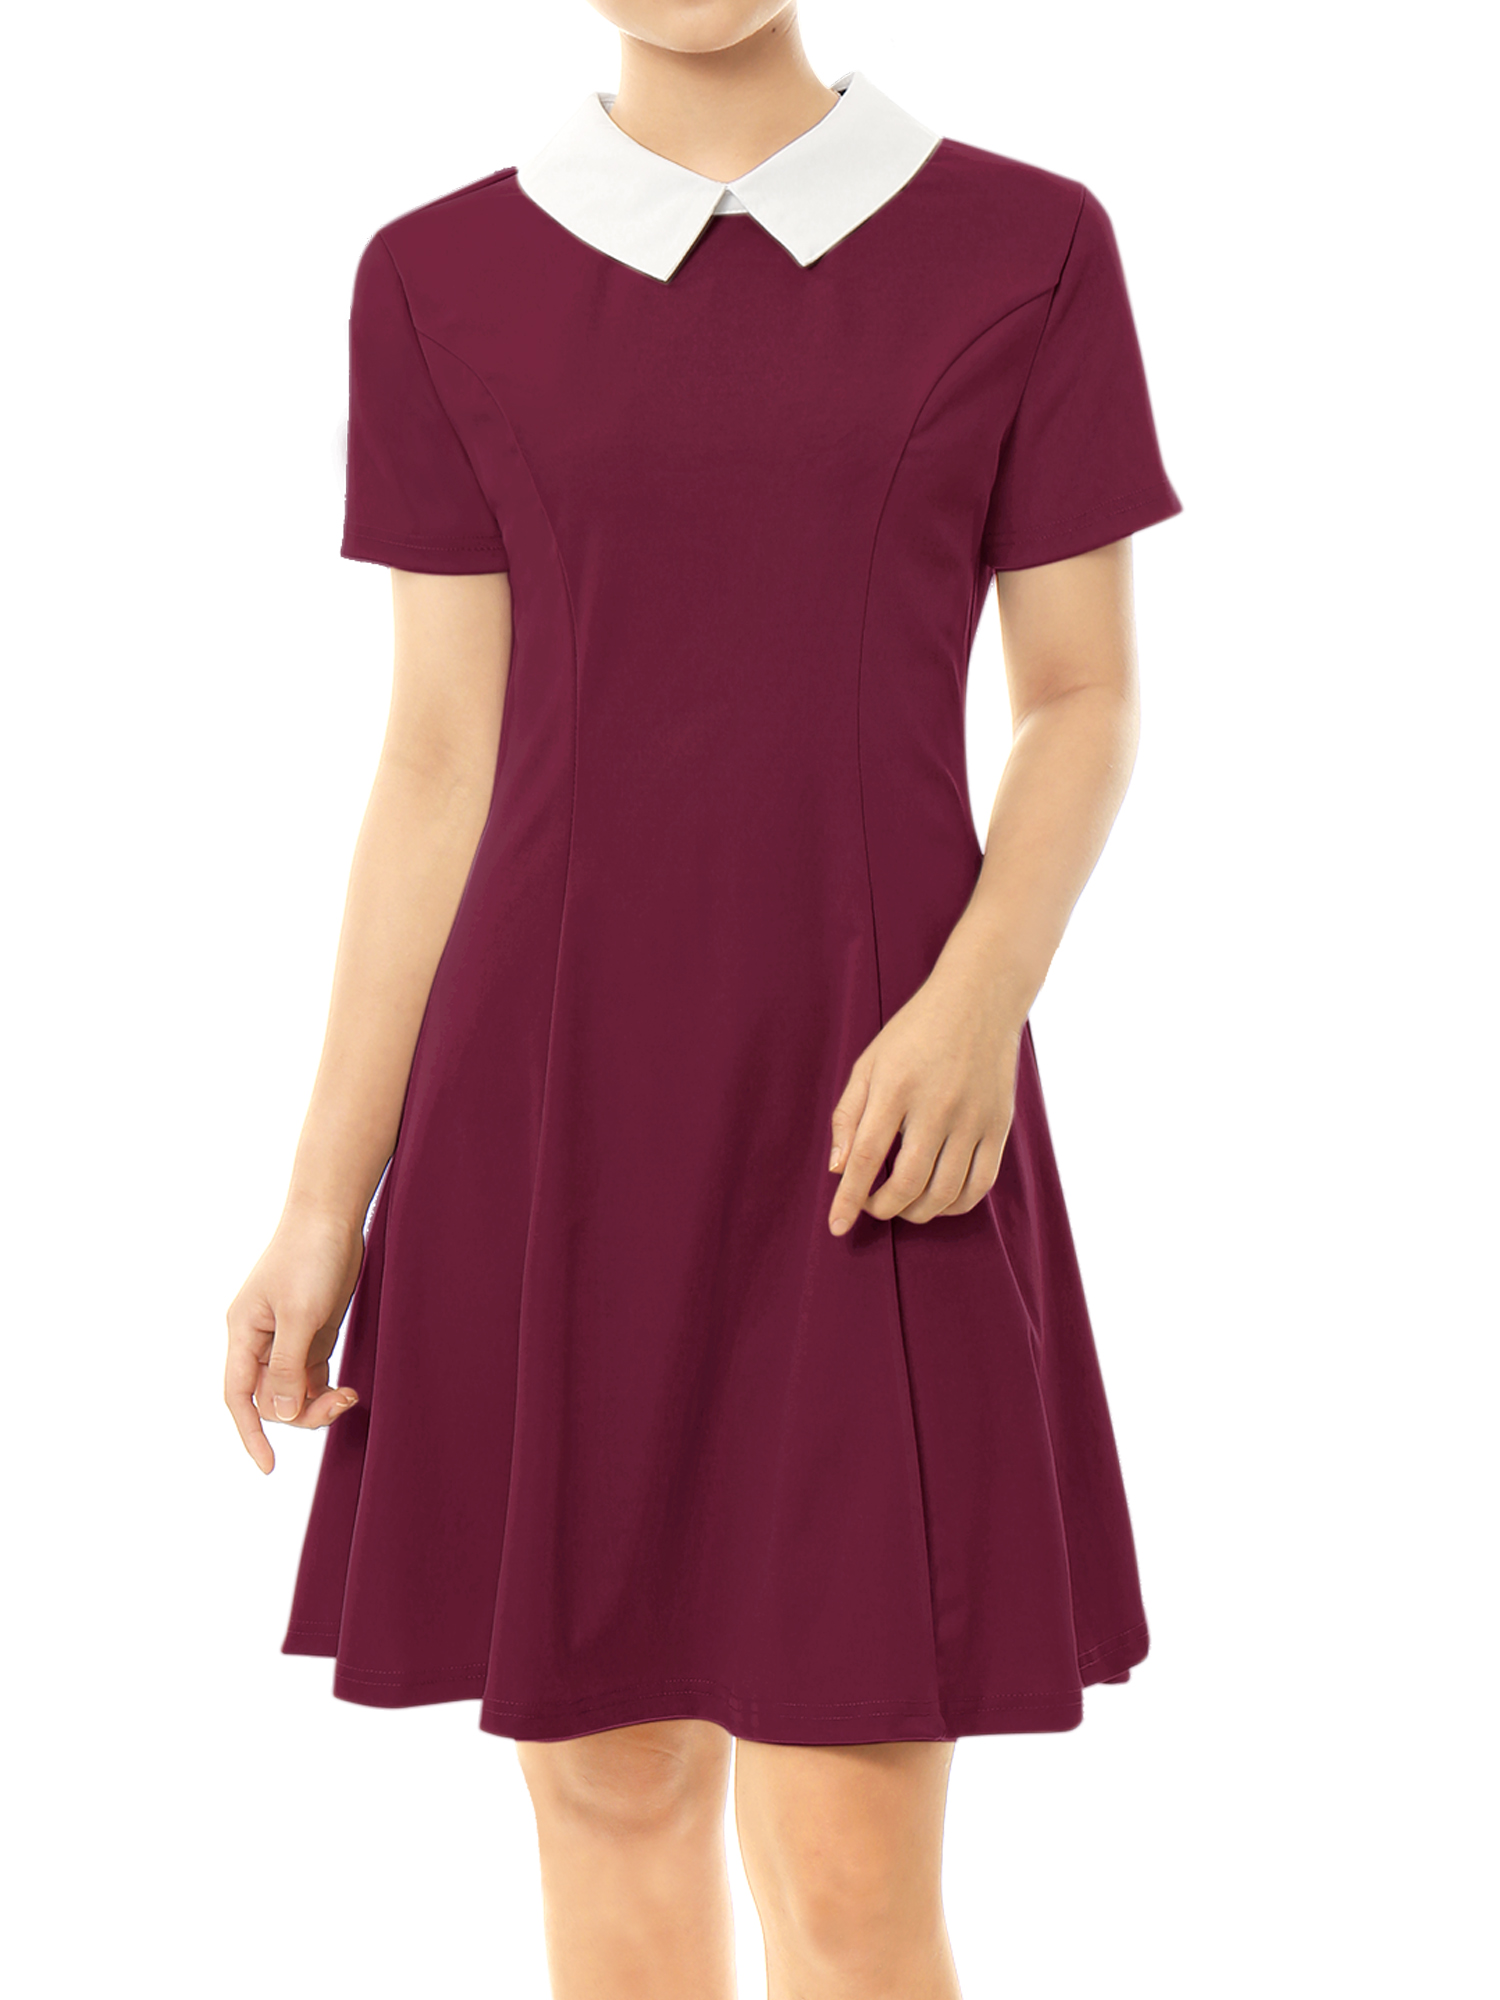 Allegra K Women Doll Collar Short Sleeves Fit and Flare Dress Red S